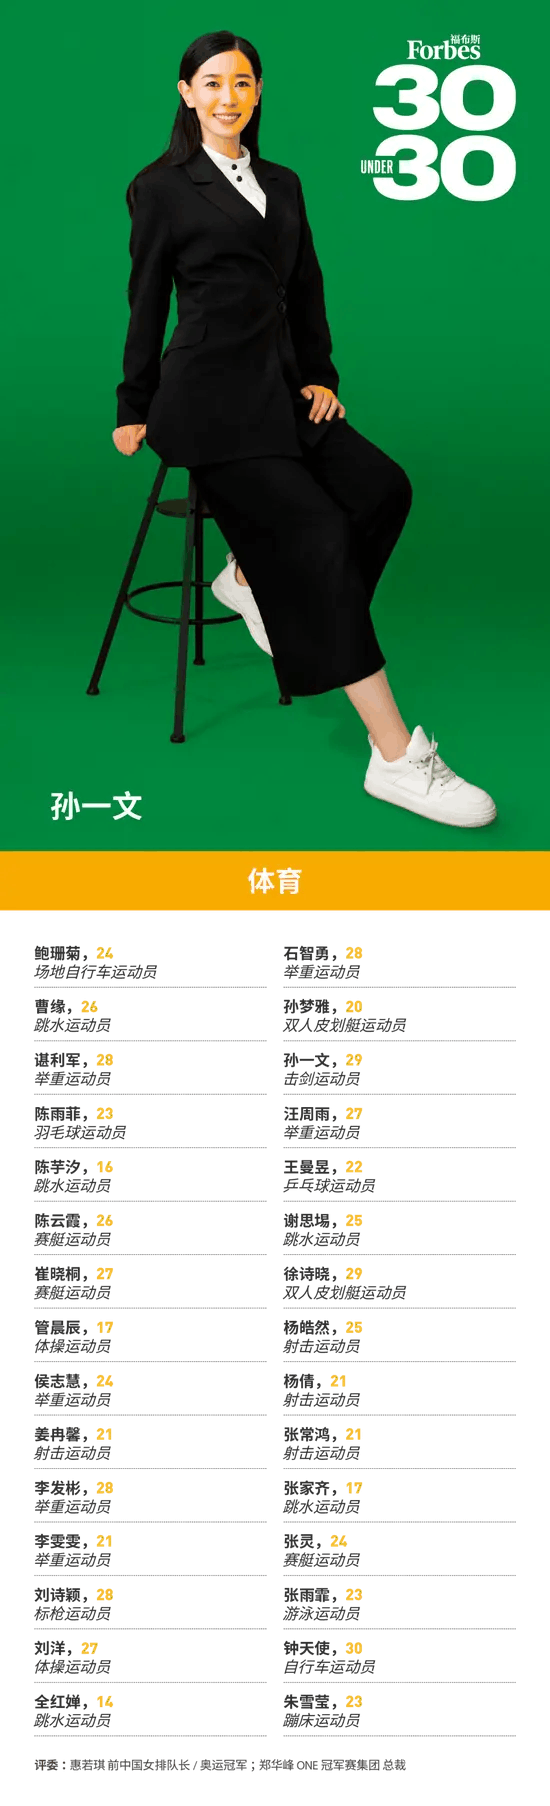 Forbes china 30 under 30 sports section